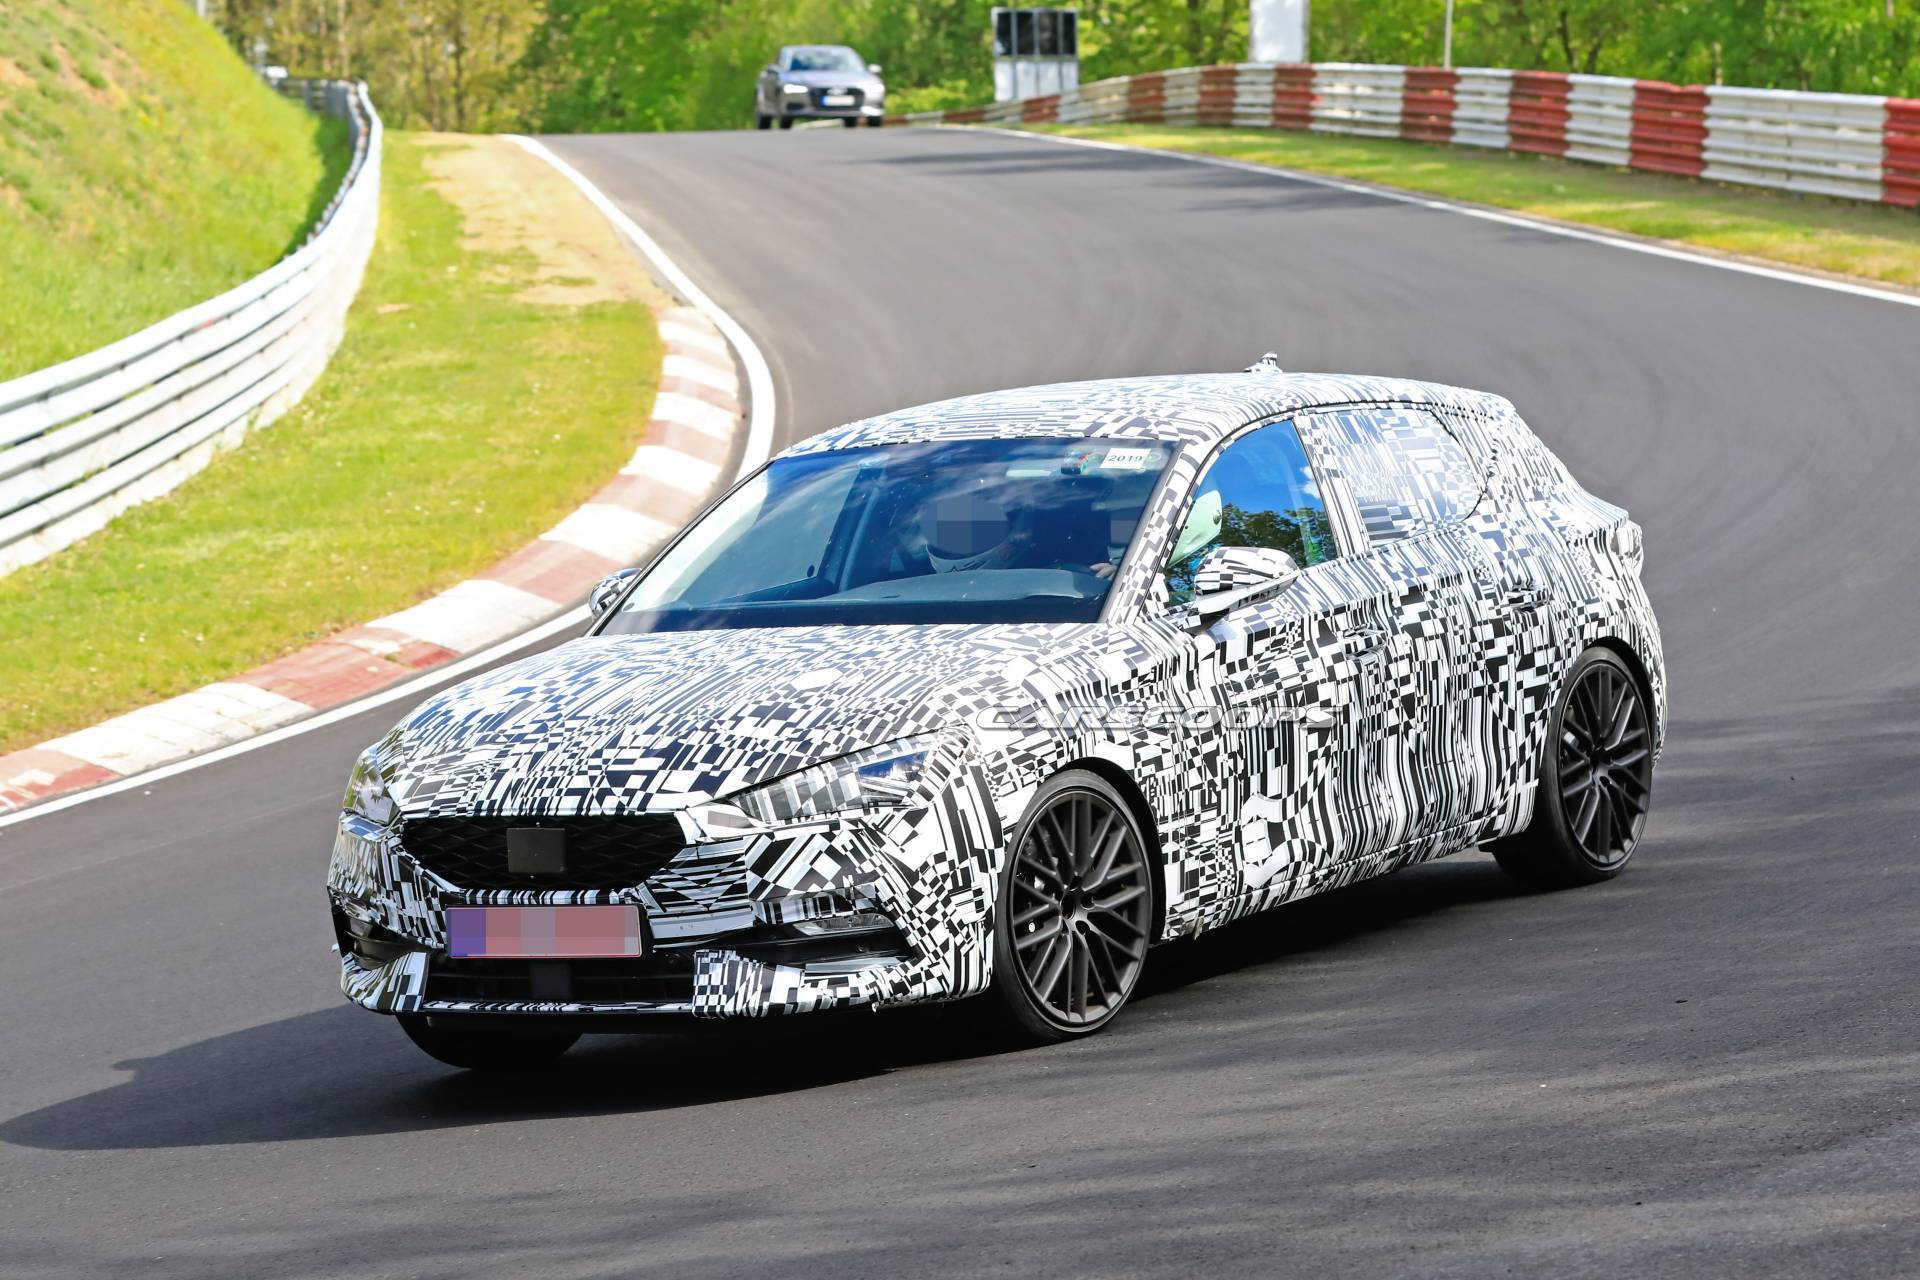 Car spotters have discovered a sported-up version of the Seat Leon hatchback on a test drive on the North Loop of the Nürburgring Circuit, Germany